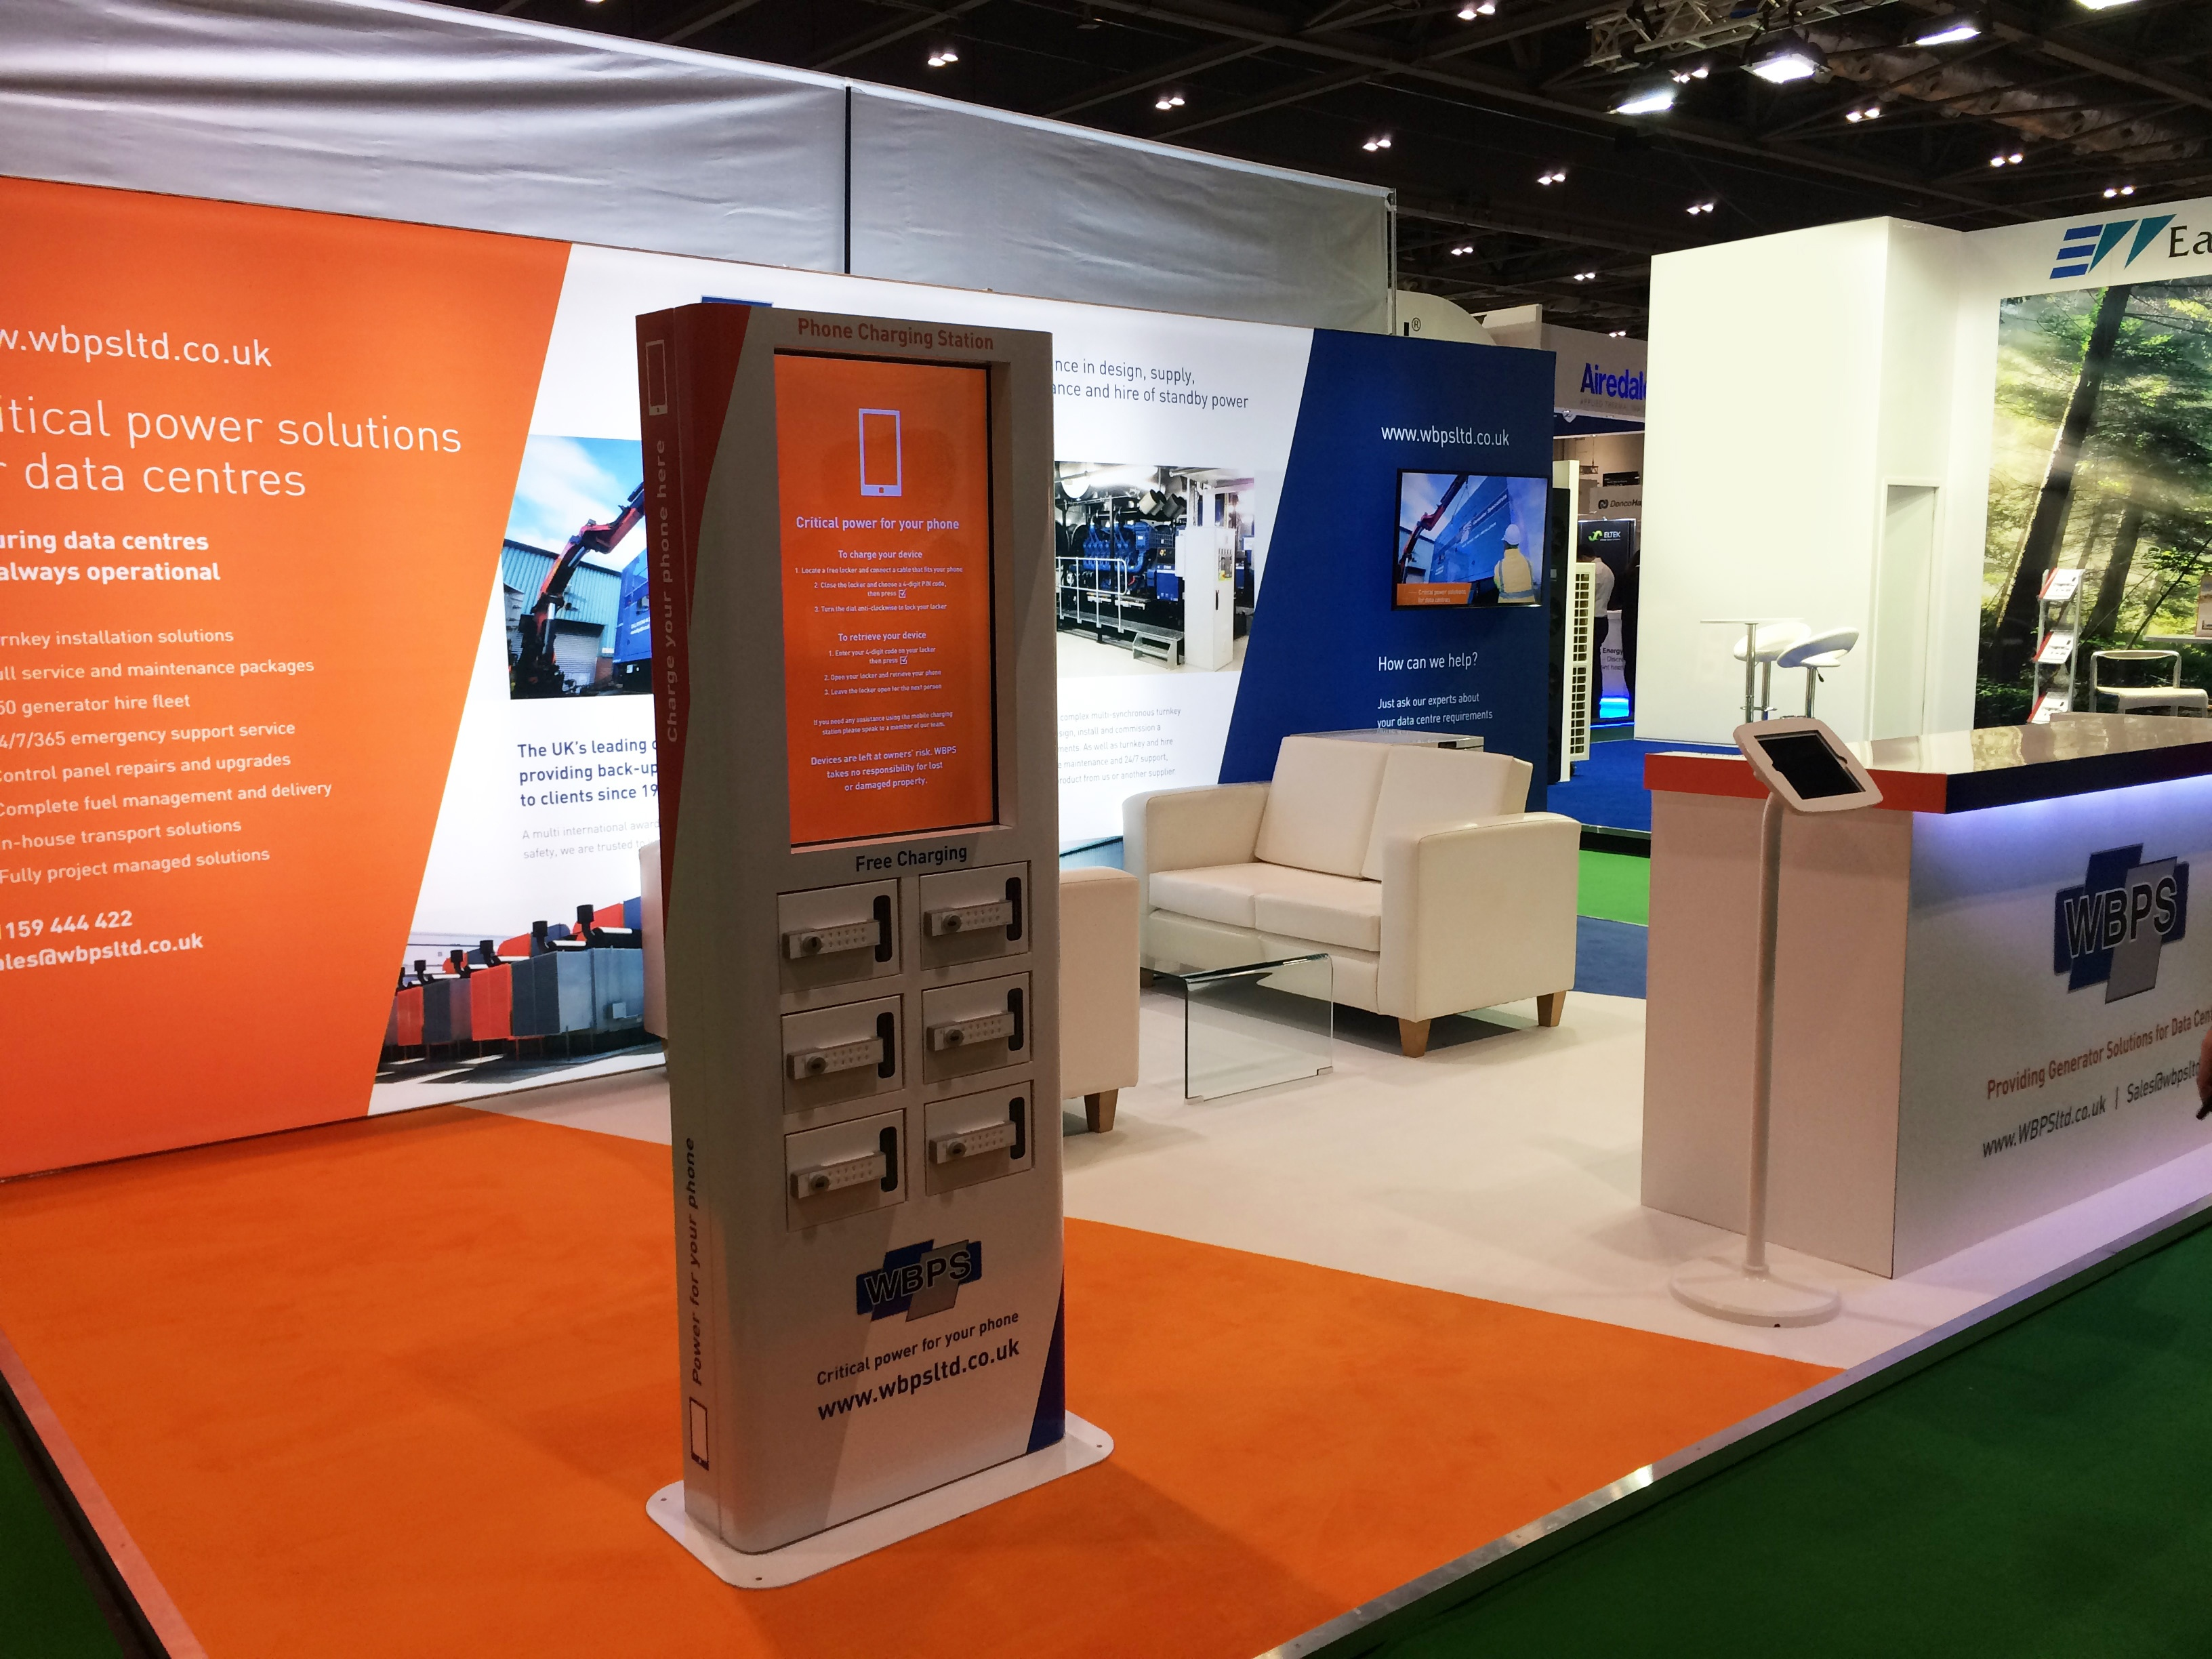 WBPS stand featuring mobile phone charging point on exhibition stand